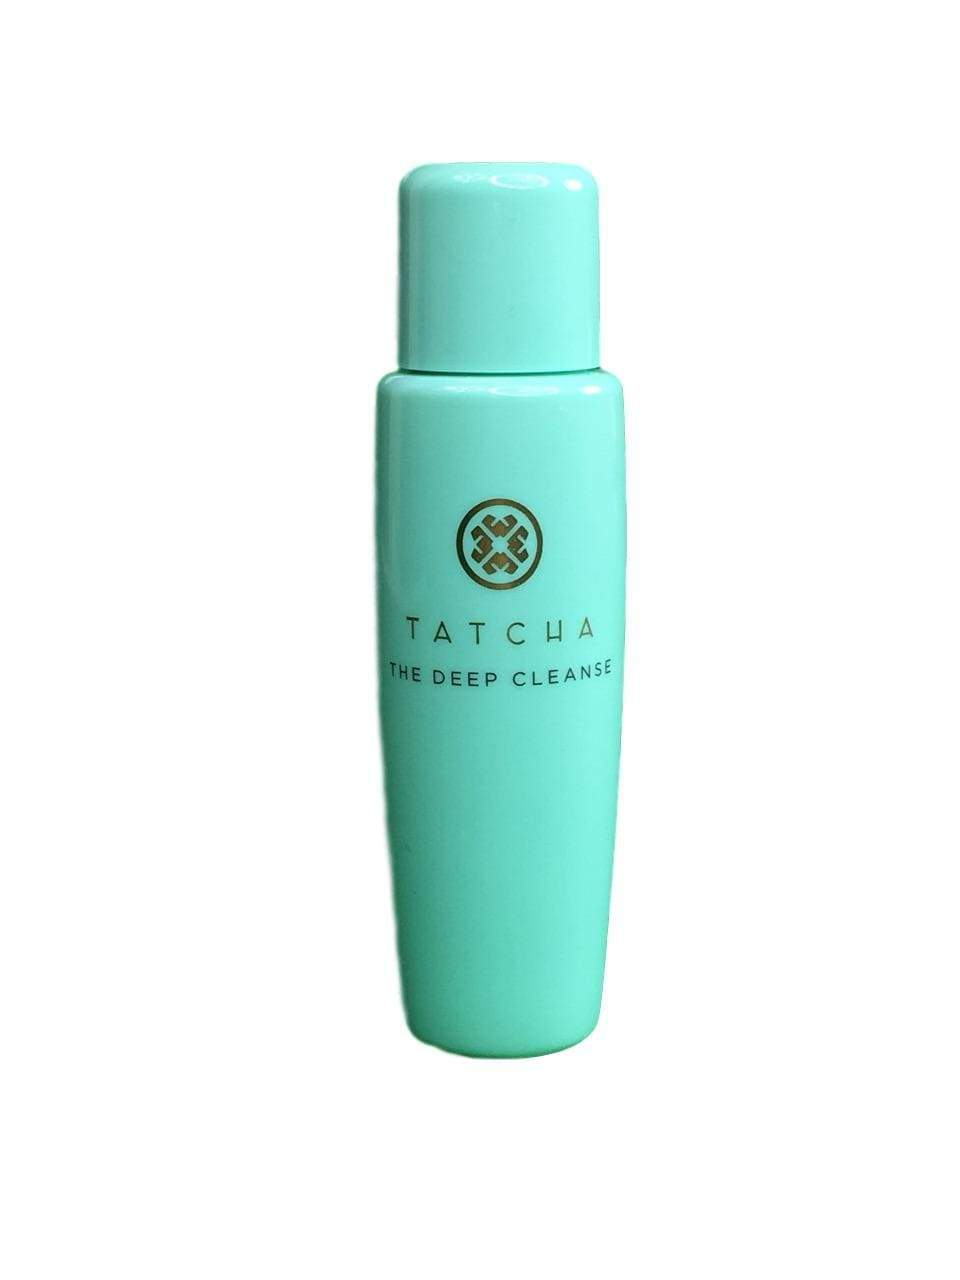 Tatcha Balanced The Deep Cleanse Travel Size, 50ml, Skin Care, London Loves Beauty